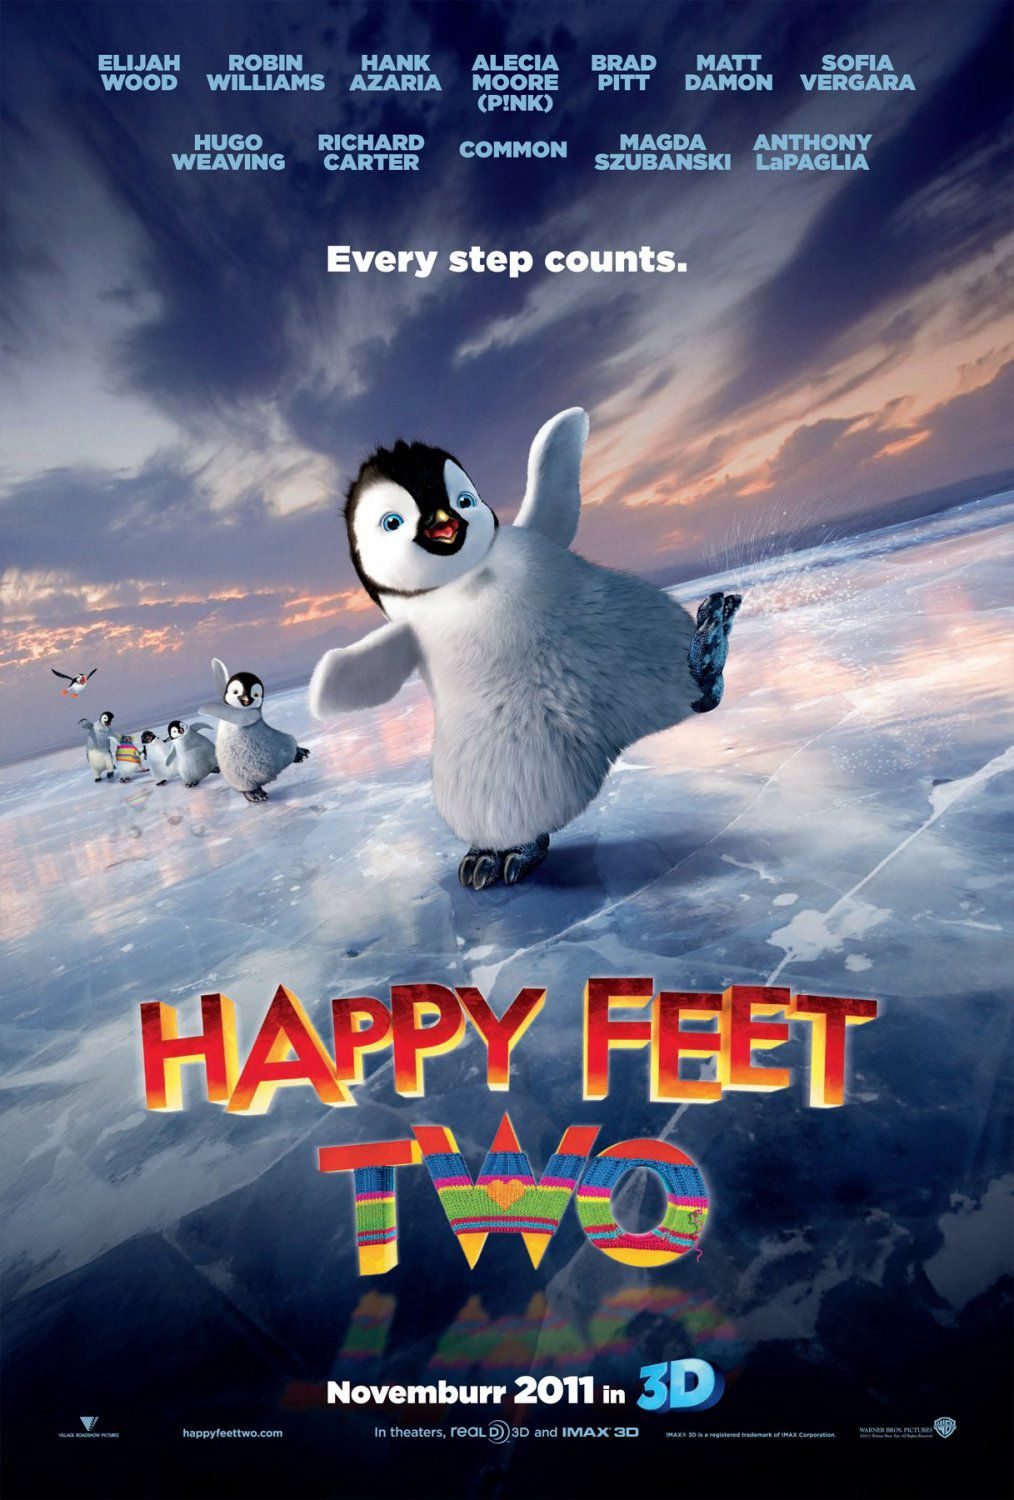 Happy Feet 2 - film poster - dancing penguin